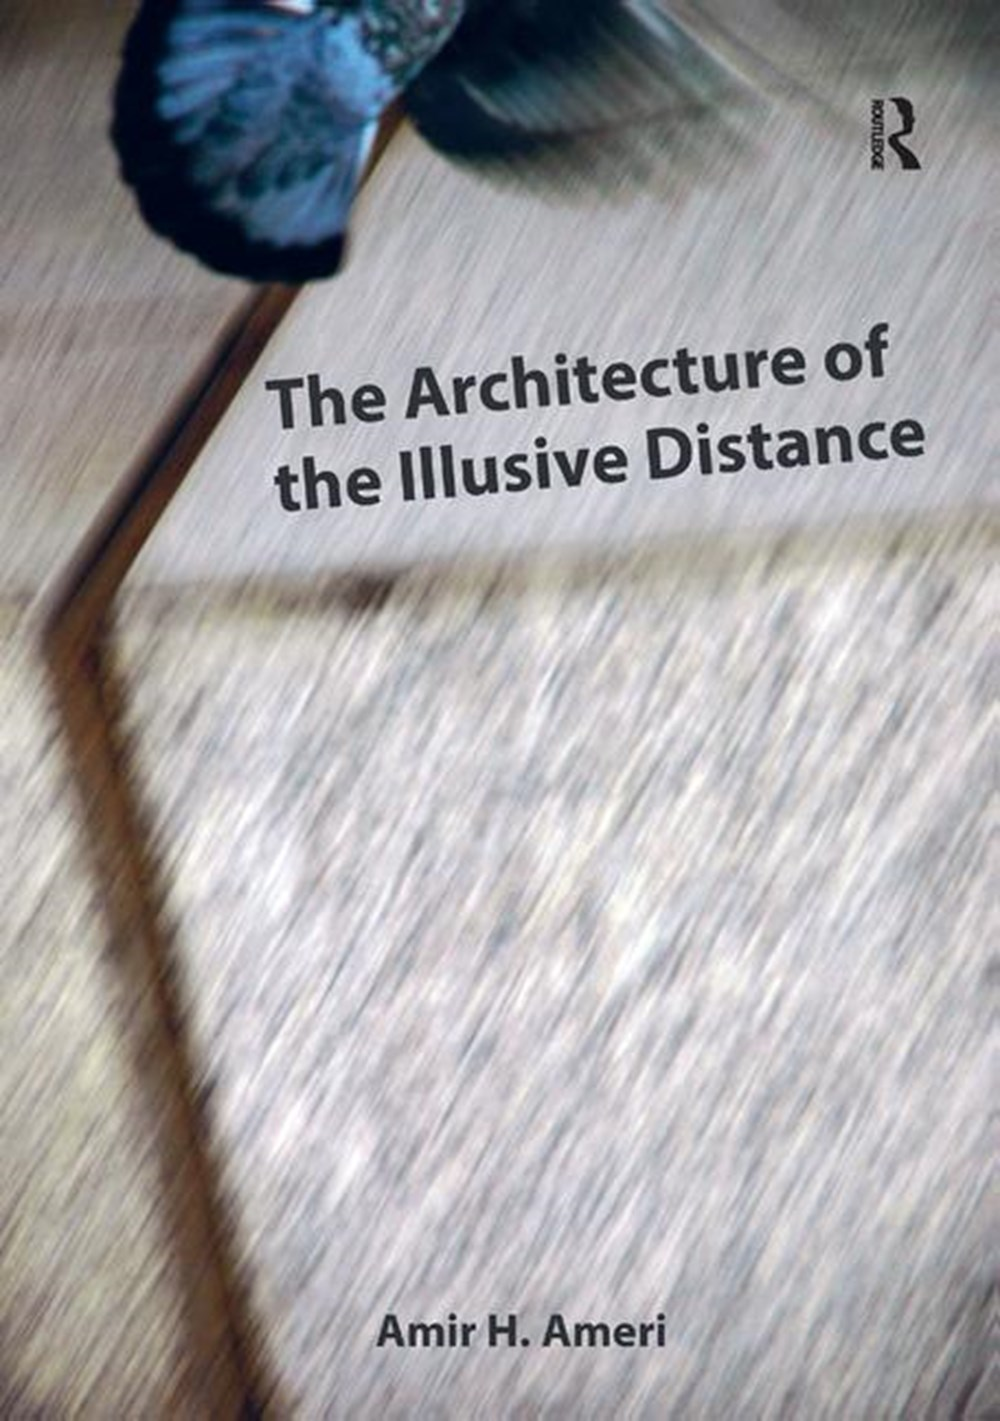 Architecture of the Illusive Distance